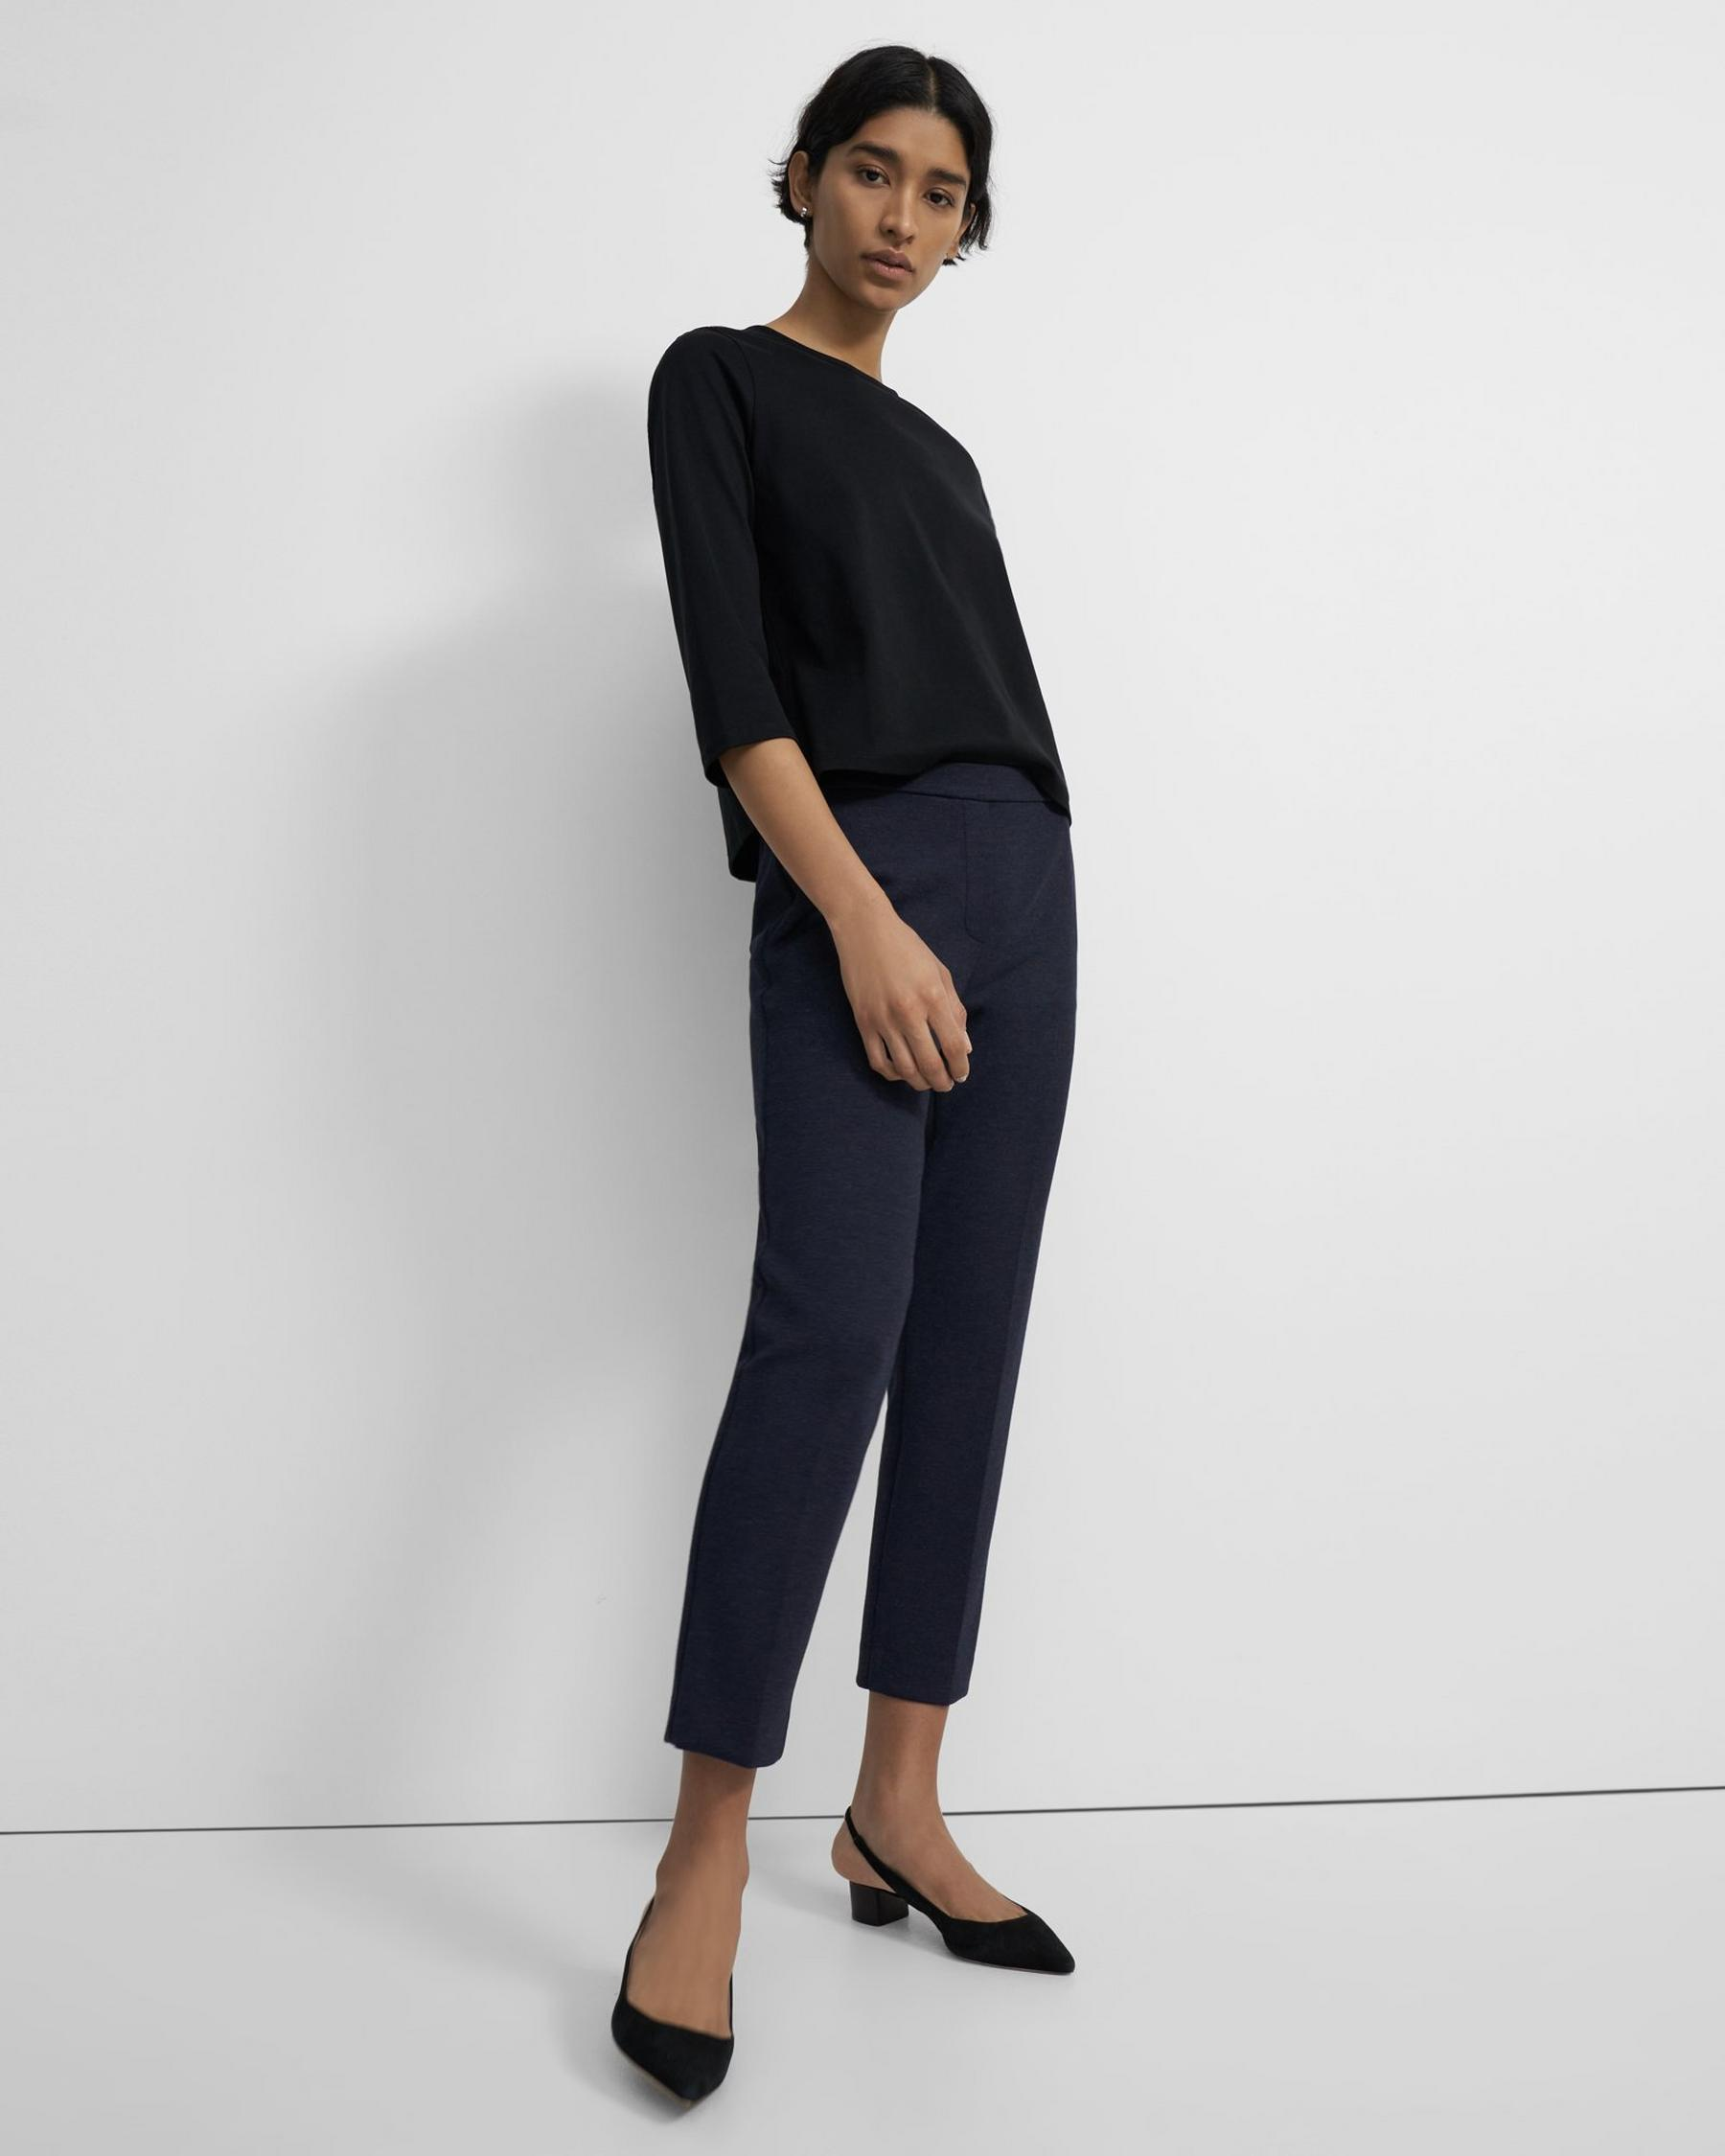 Treeca Pull-On Pant in Double-Knit Jersey